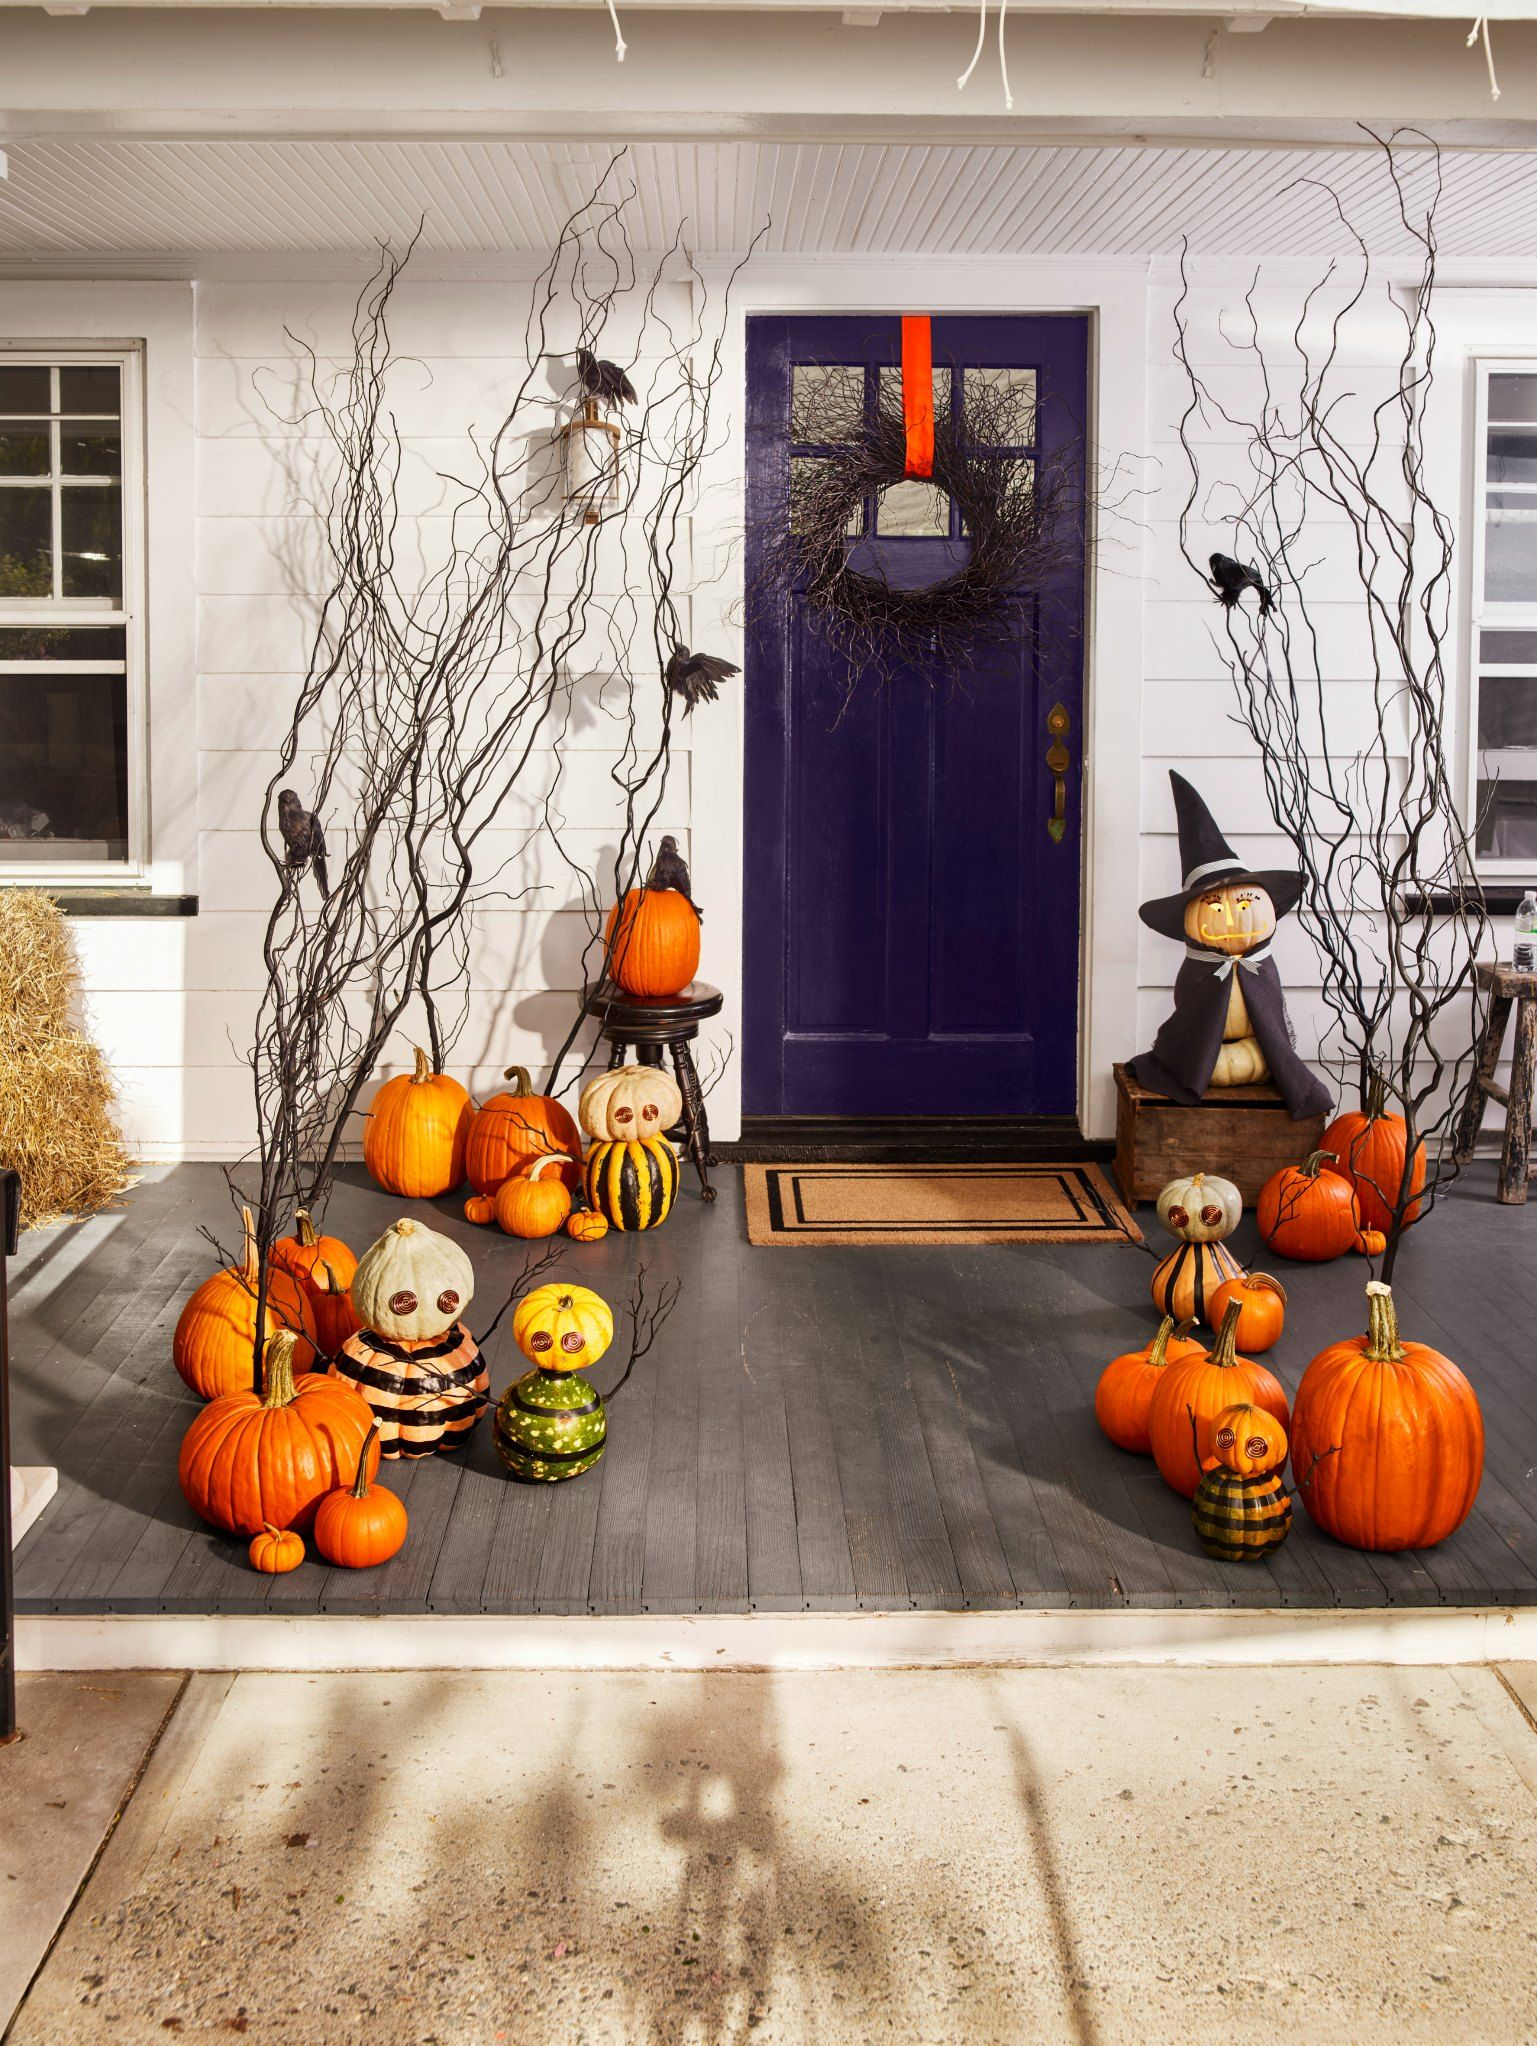 54 Easy Halloween Decorations , Spooky Home Decor Ideas for